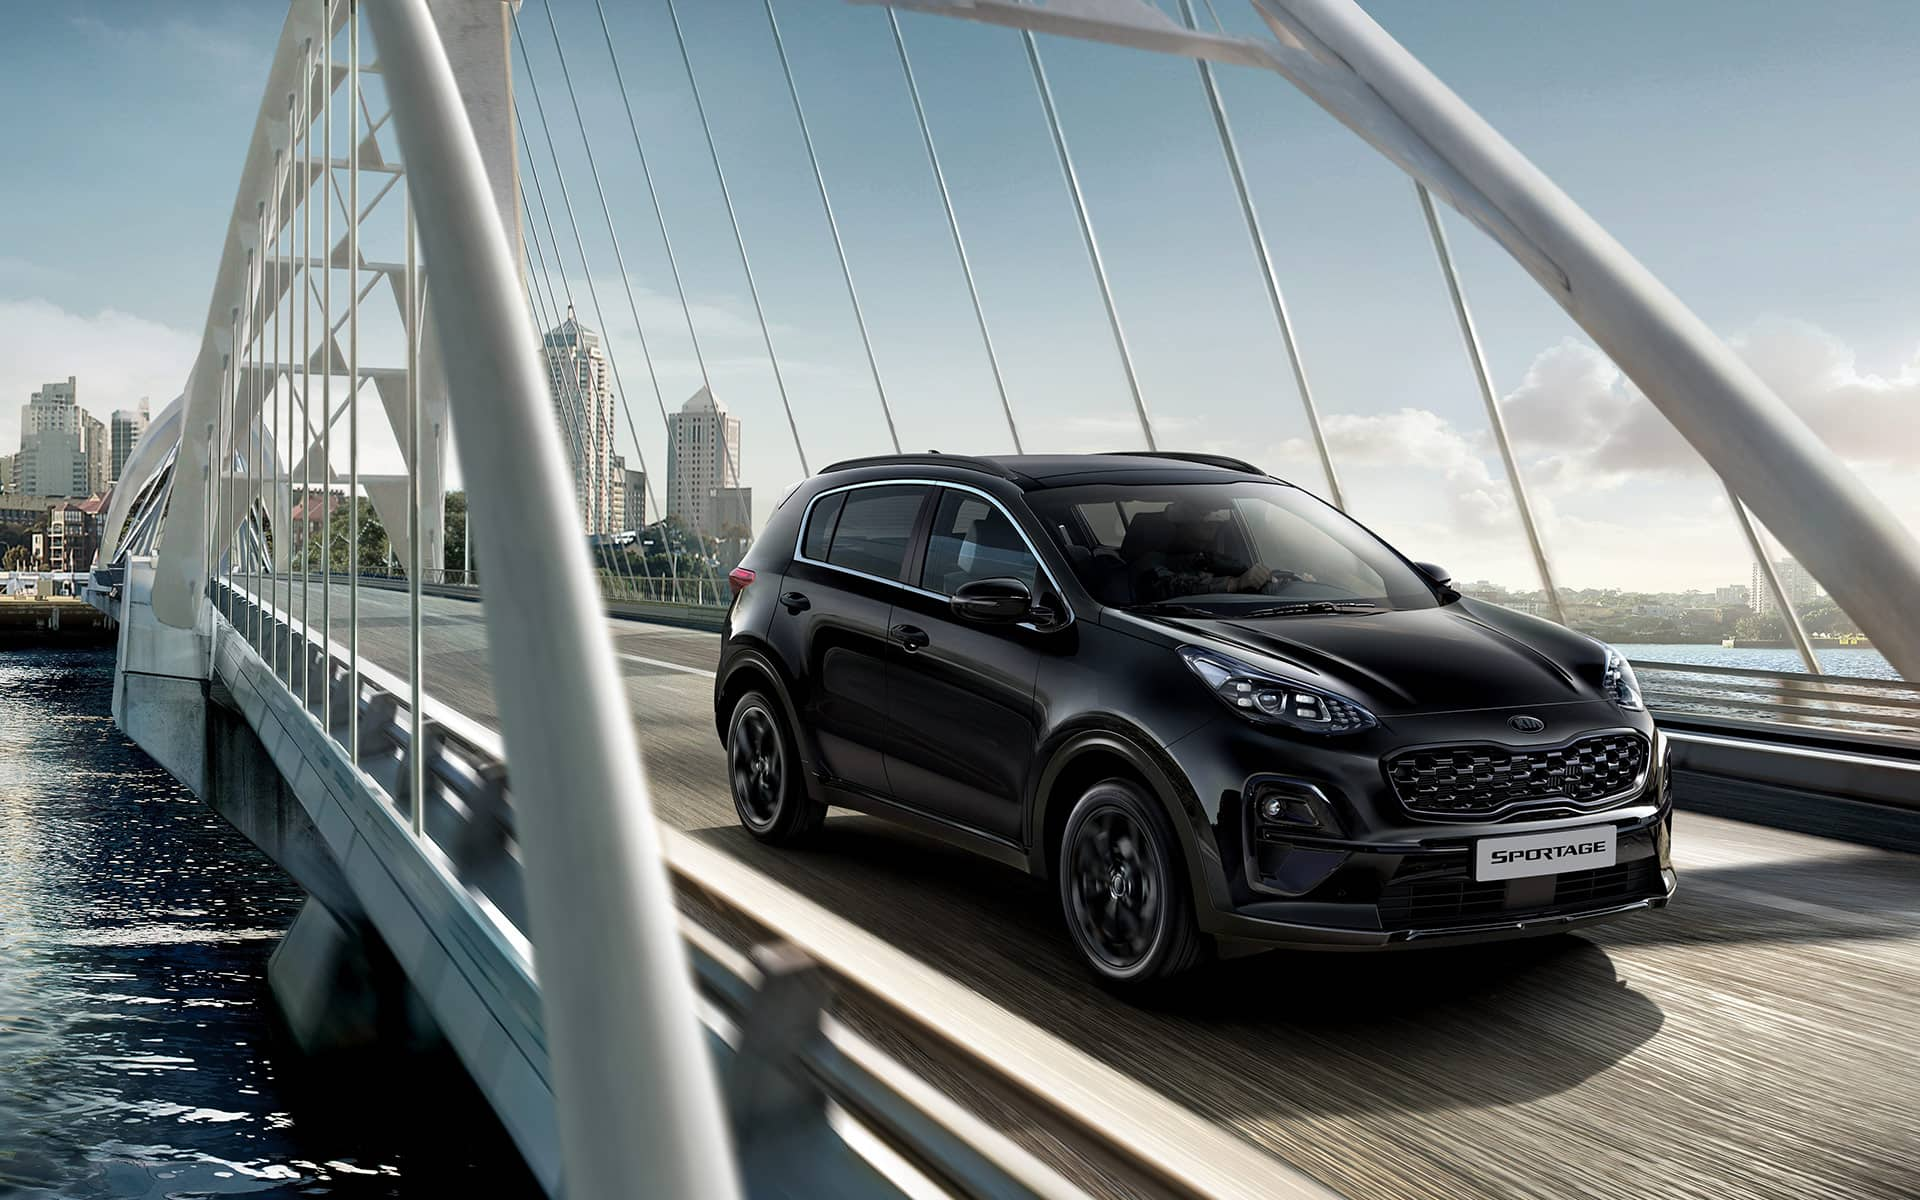 Kia Sportage Black Edition design